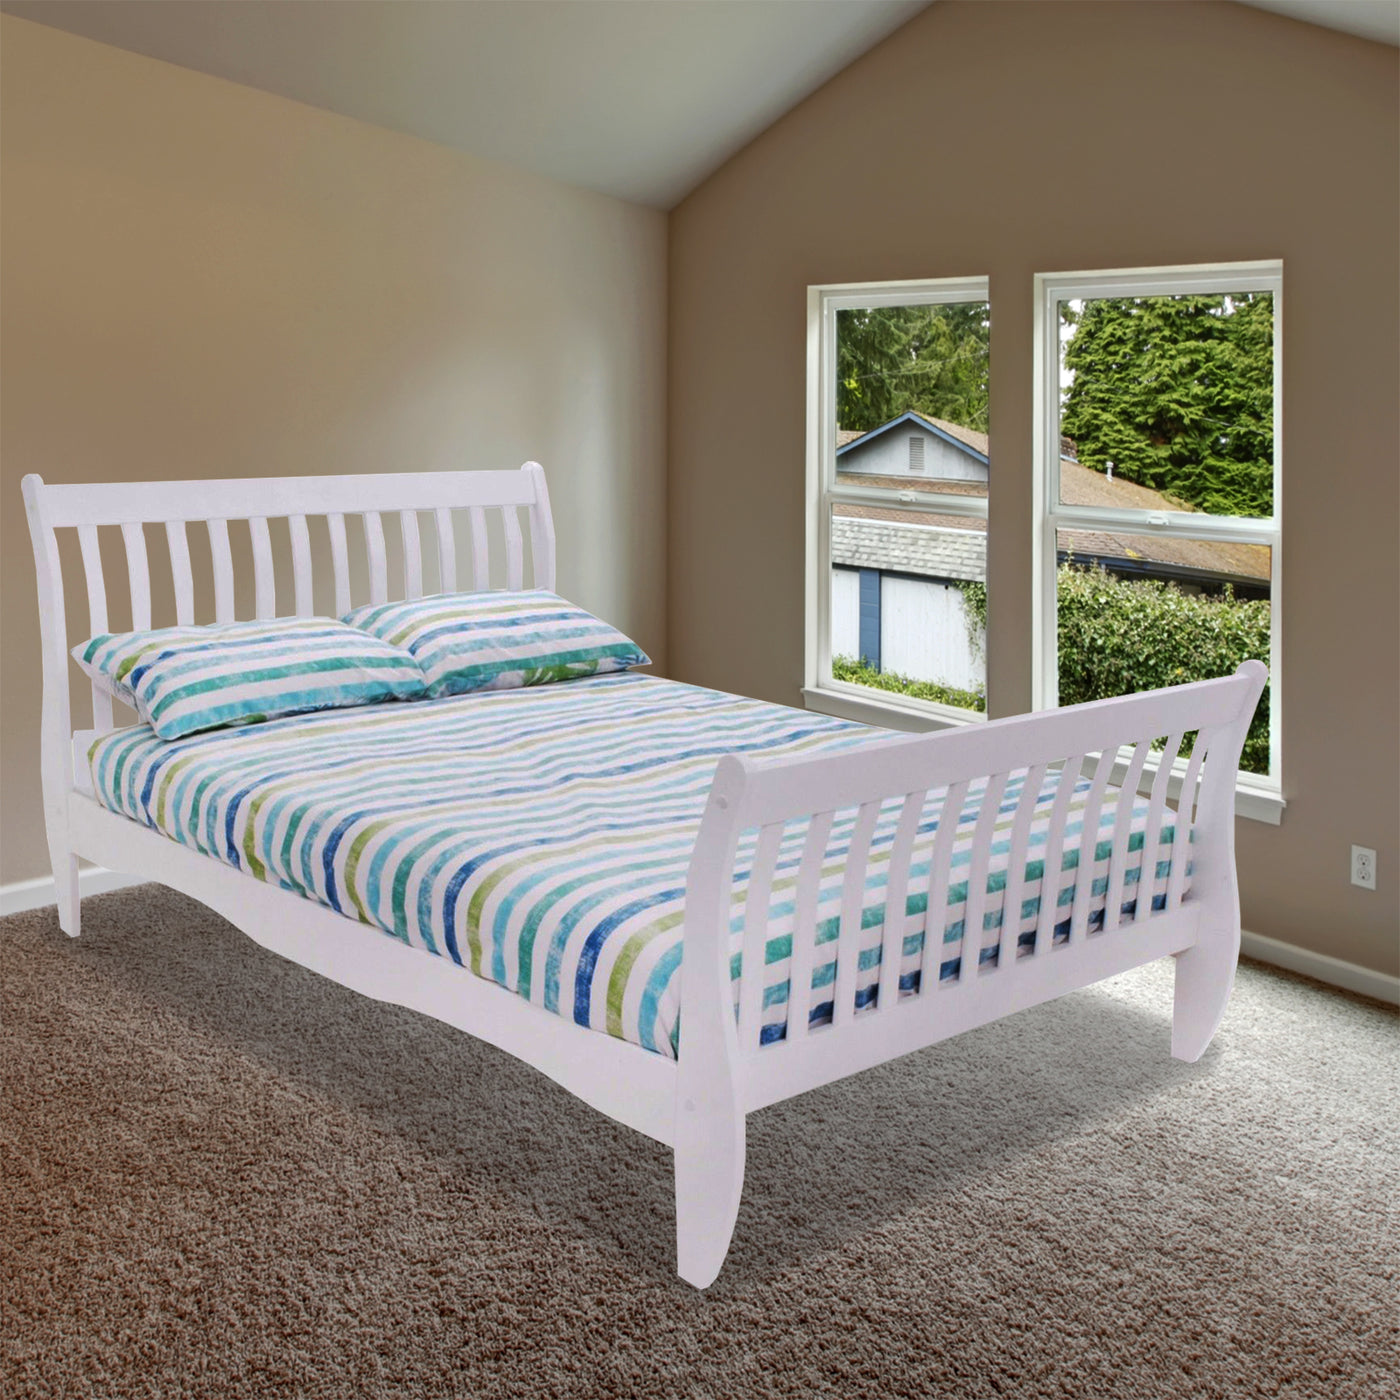 new bed frame off interior design classic ashby slay pottery queen in apartment barn pict frames sleigh home